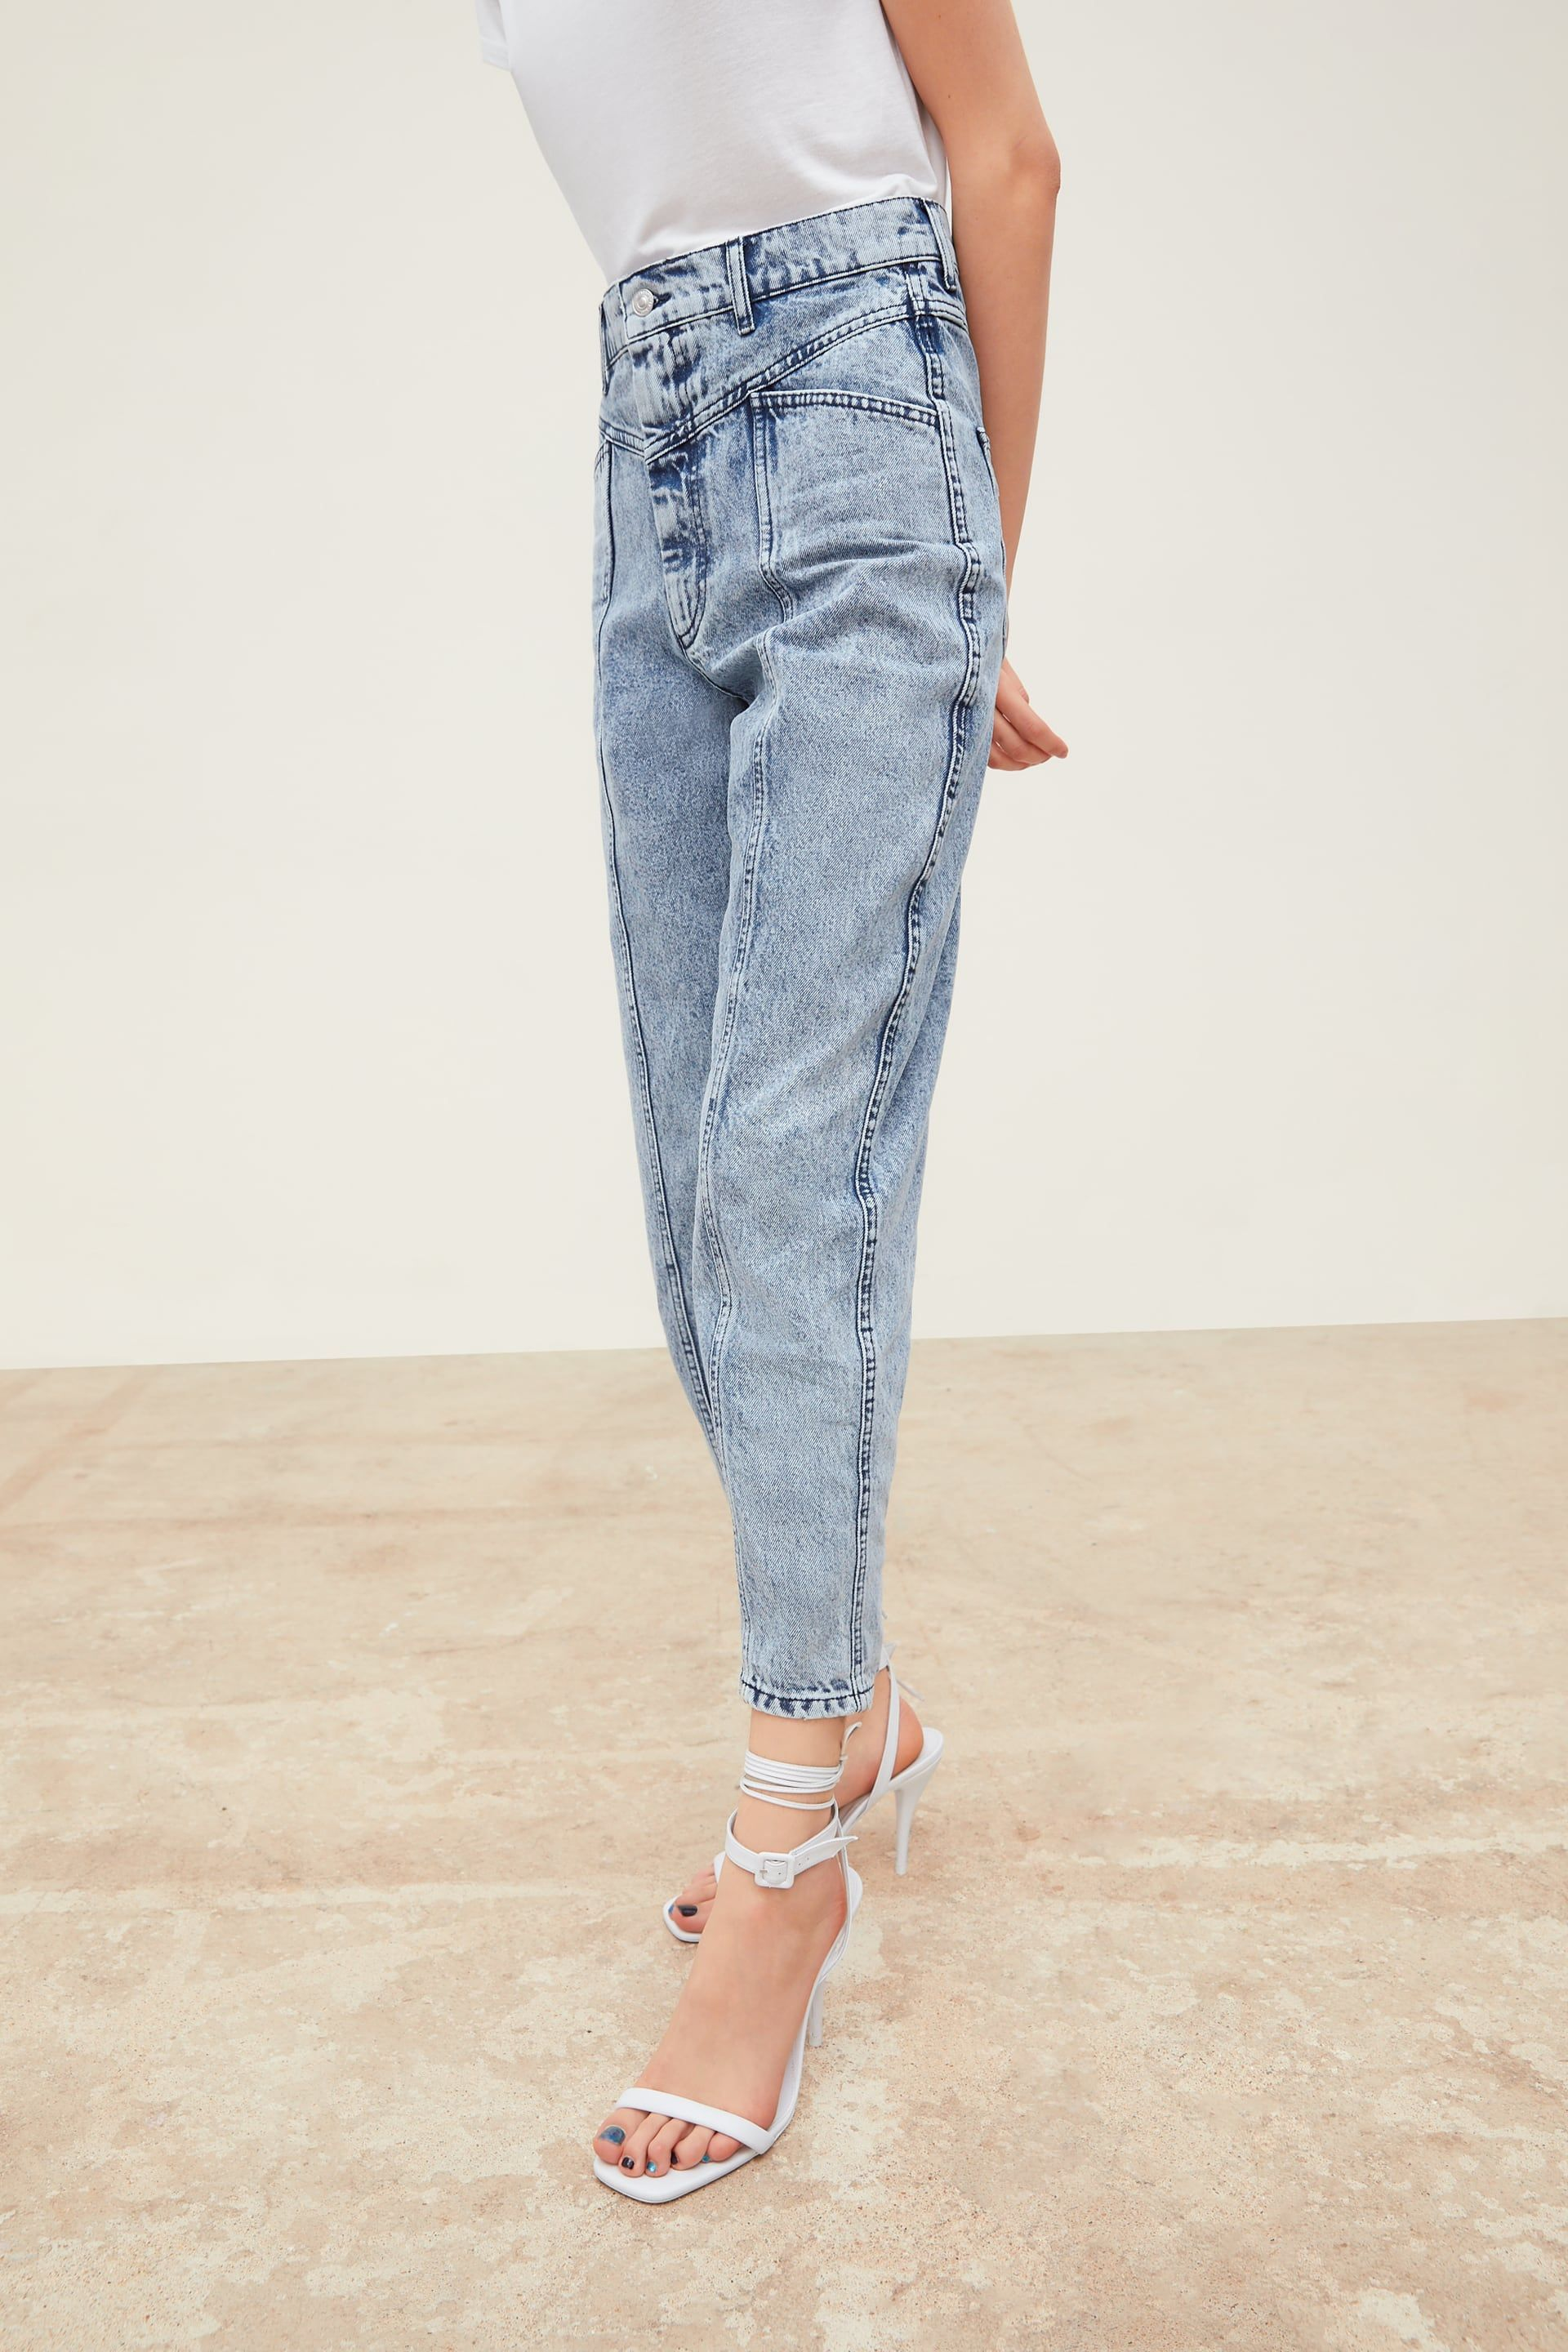 91340e7a ZW PREMIUM '80S BAGGY JEANS IN ACID BLUE - View All-JEANS-WOMAN | ZARA  United States